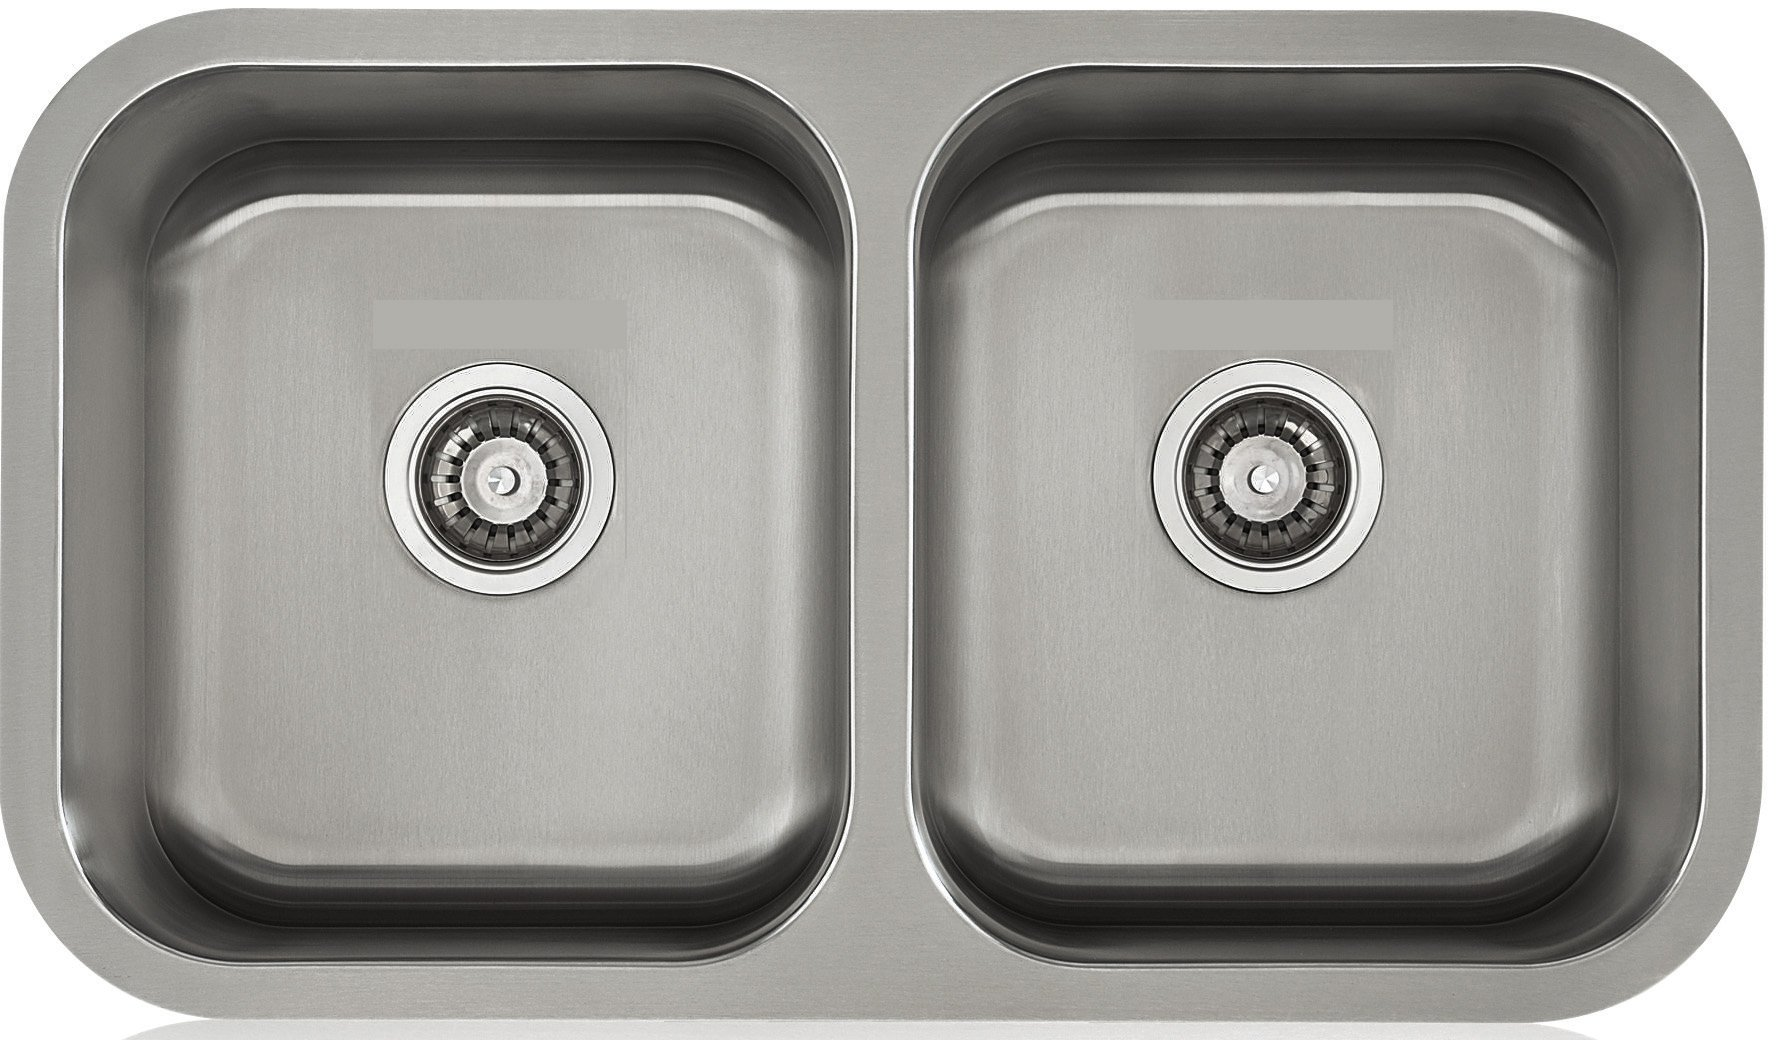 Lenova LD18118 Apogee Stainless Steel Equal Double Bowl Under-Mount Kitchen Sink, 18-Gauge by Apogee (Image #1)